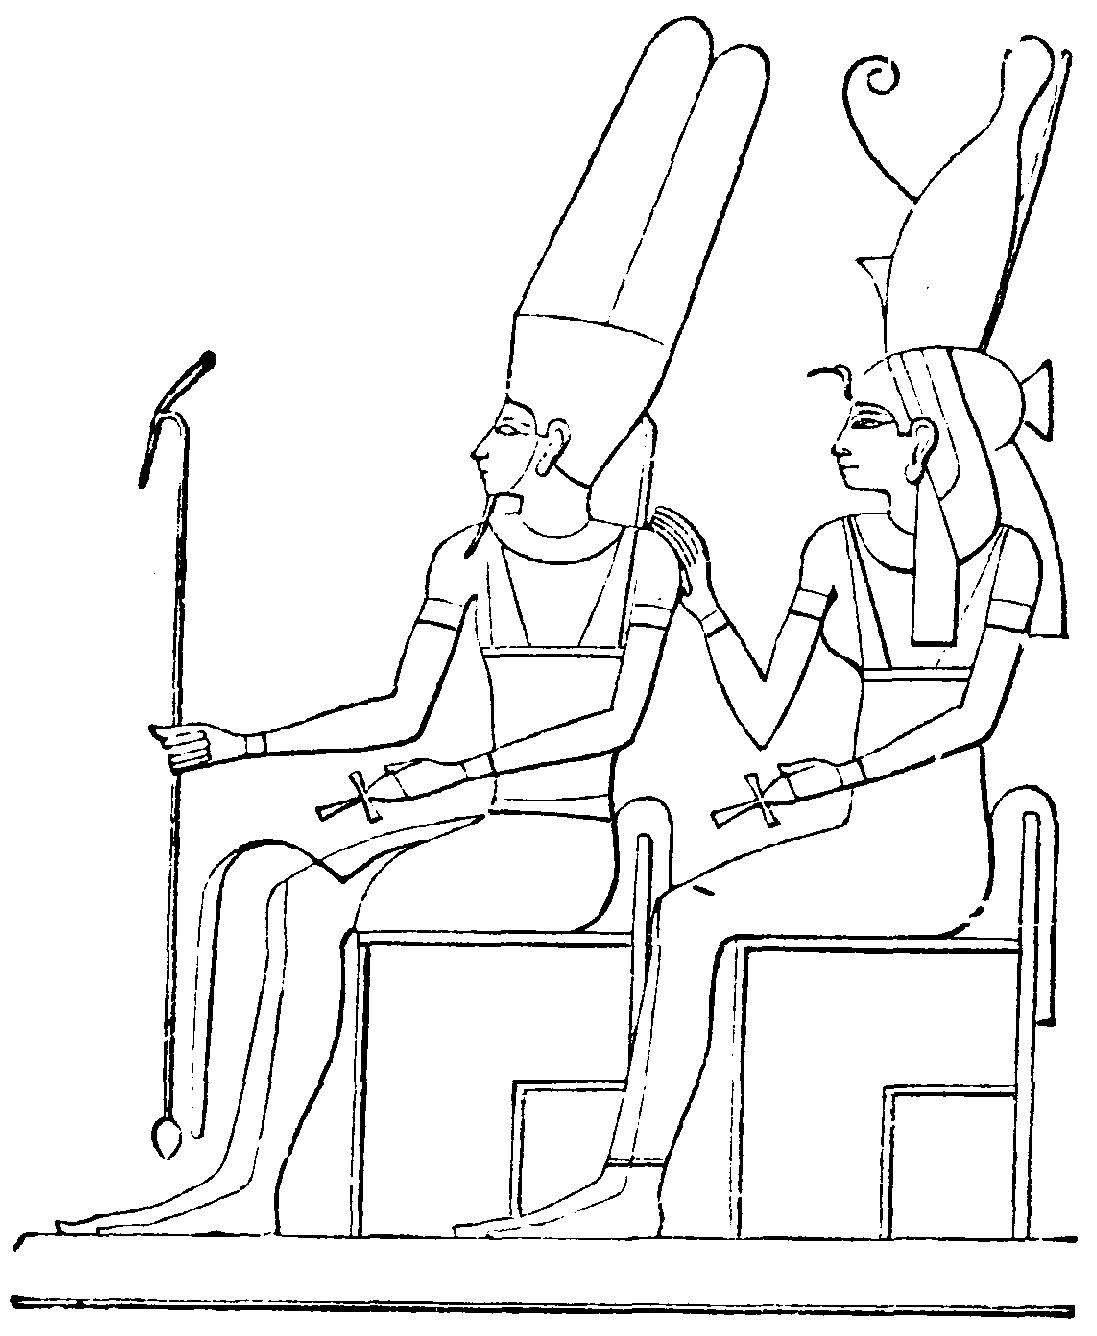 Printable map of egypt coloring page coloring pages for Egypt coloring page